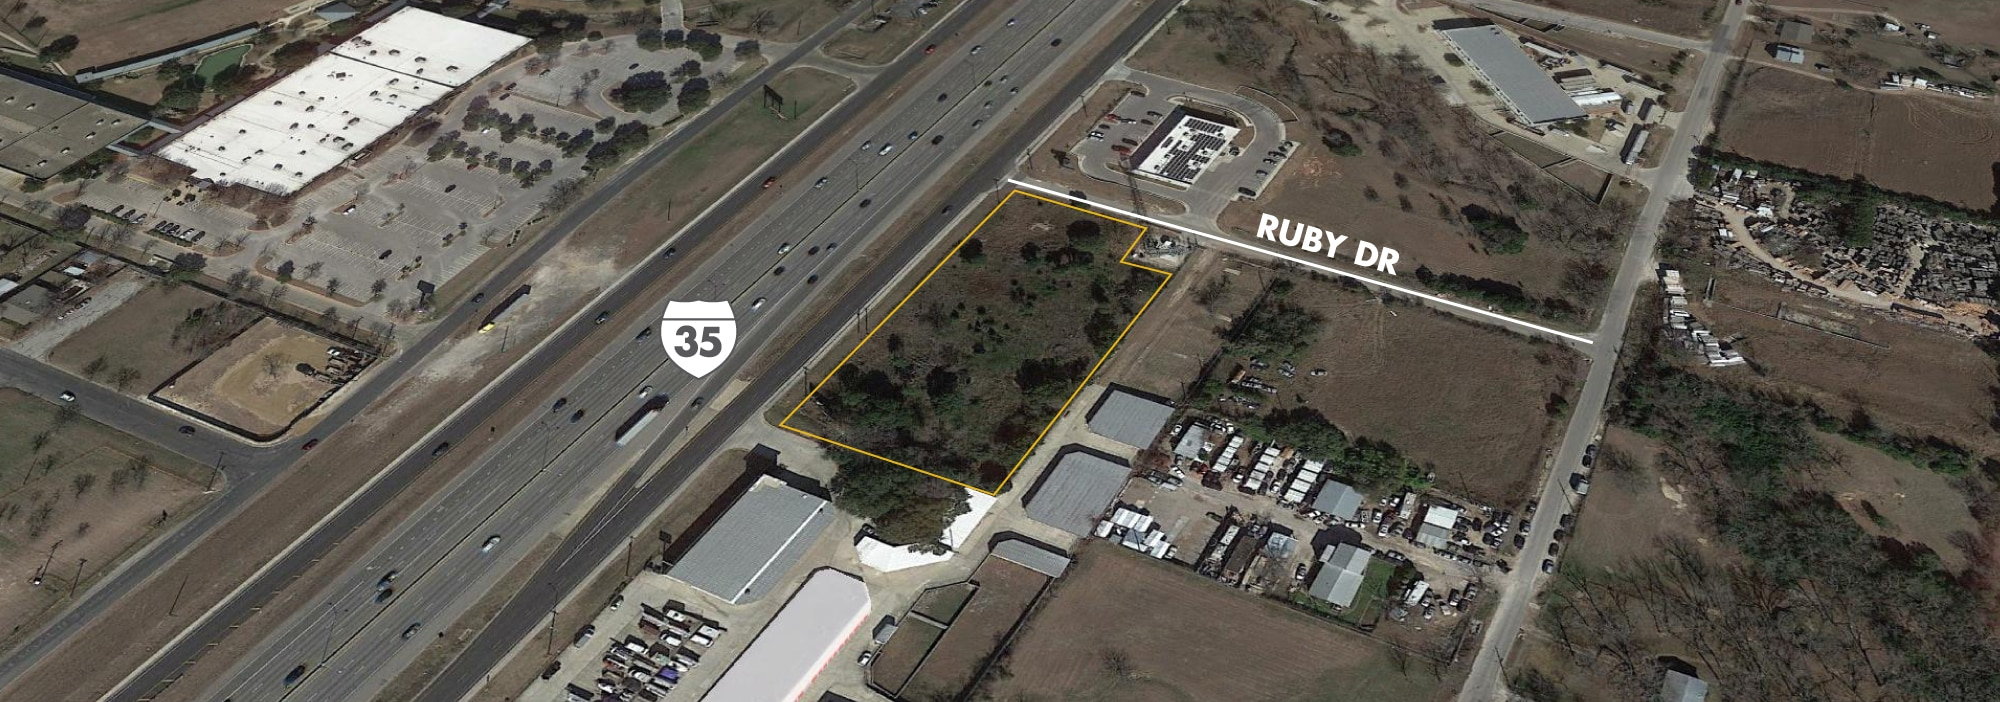 10807 North IH-35 Frontage Rd